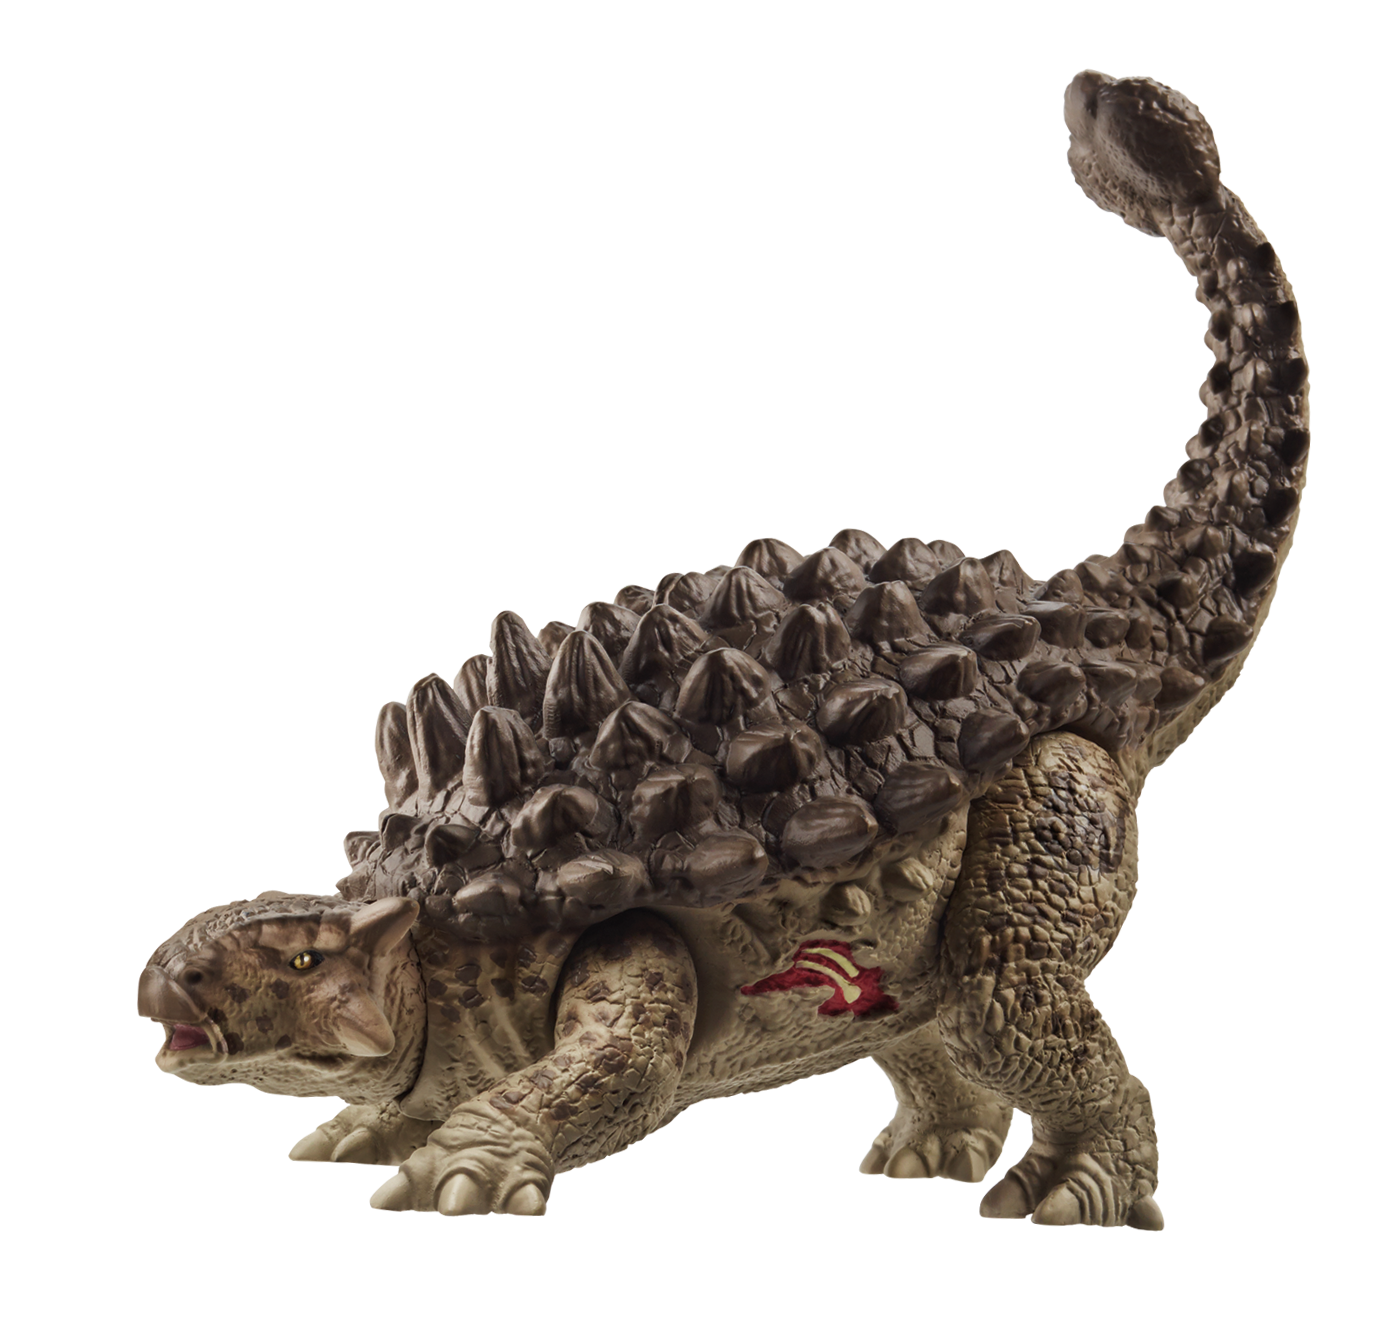 Jurassic world dinosaurs png. Here s what the